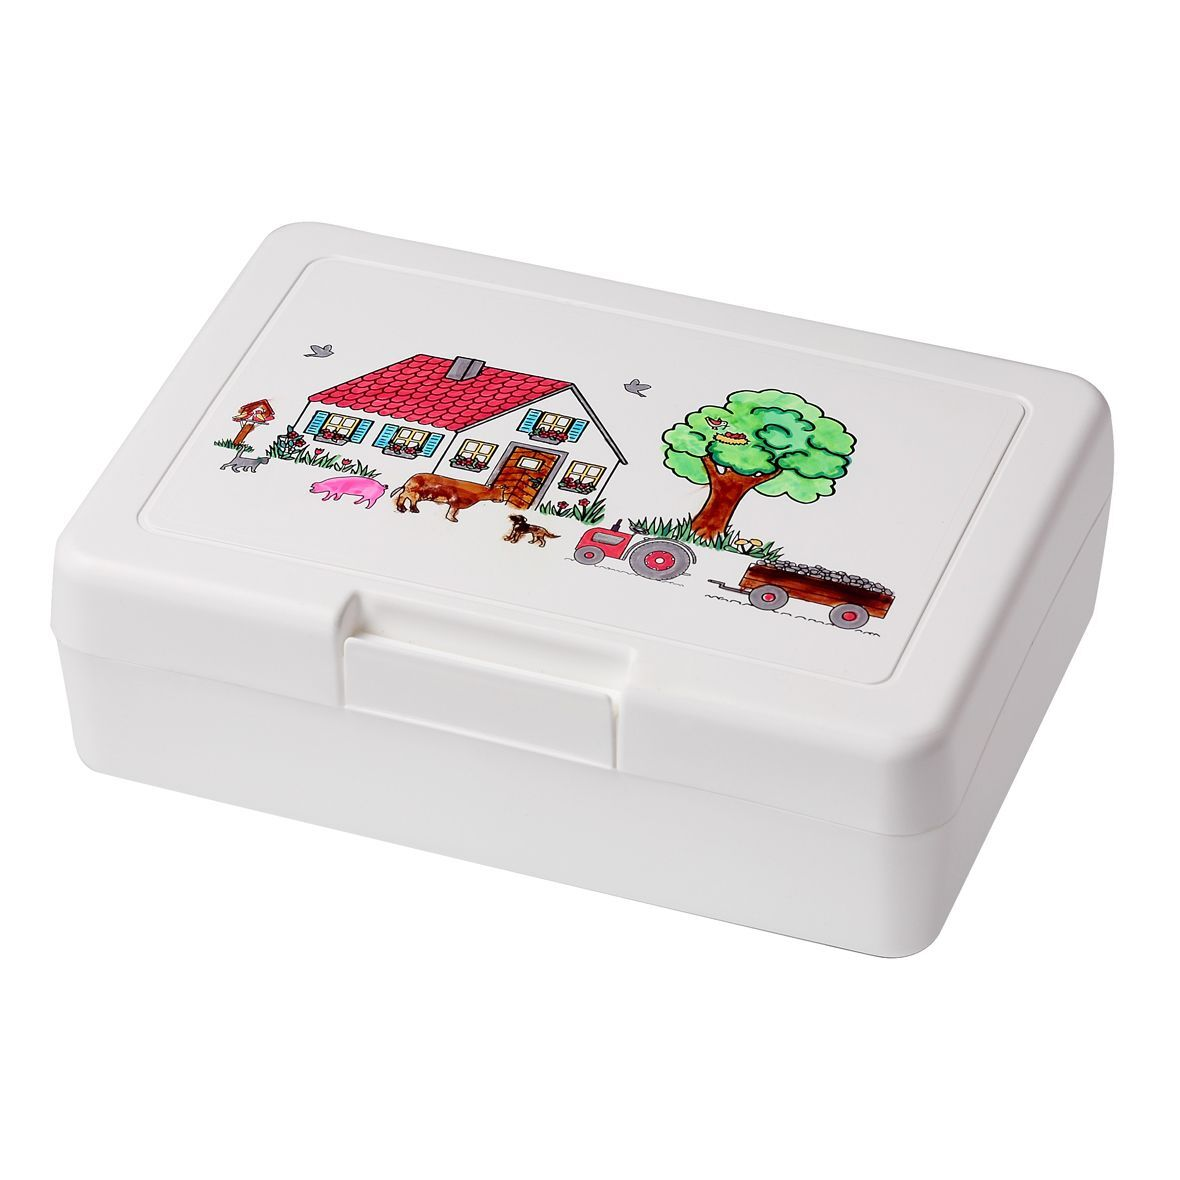 Lunch Box & for Colouring